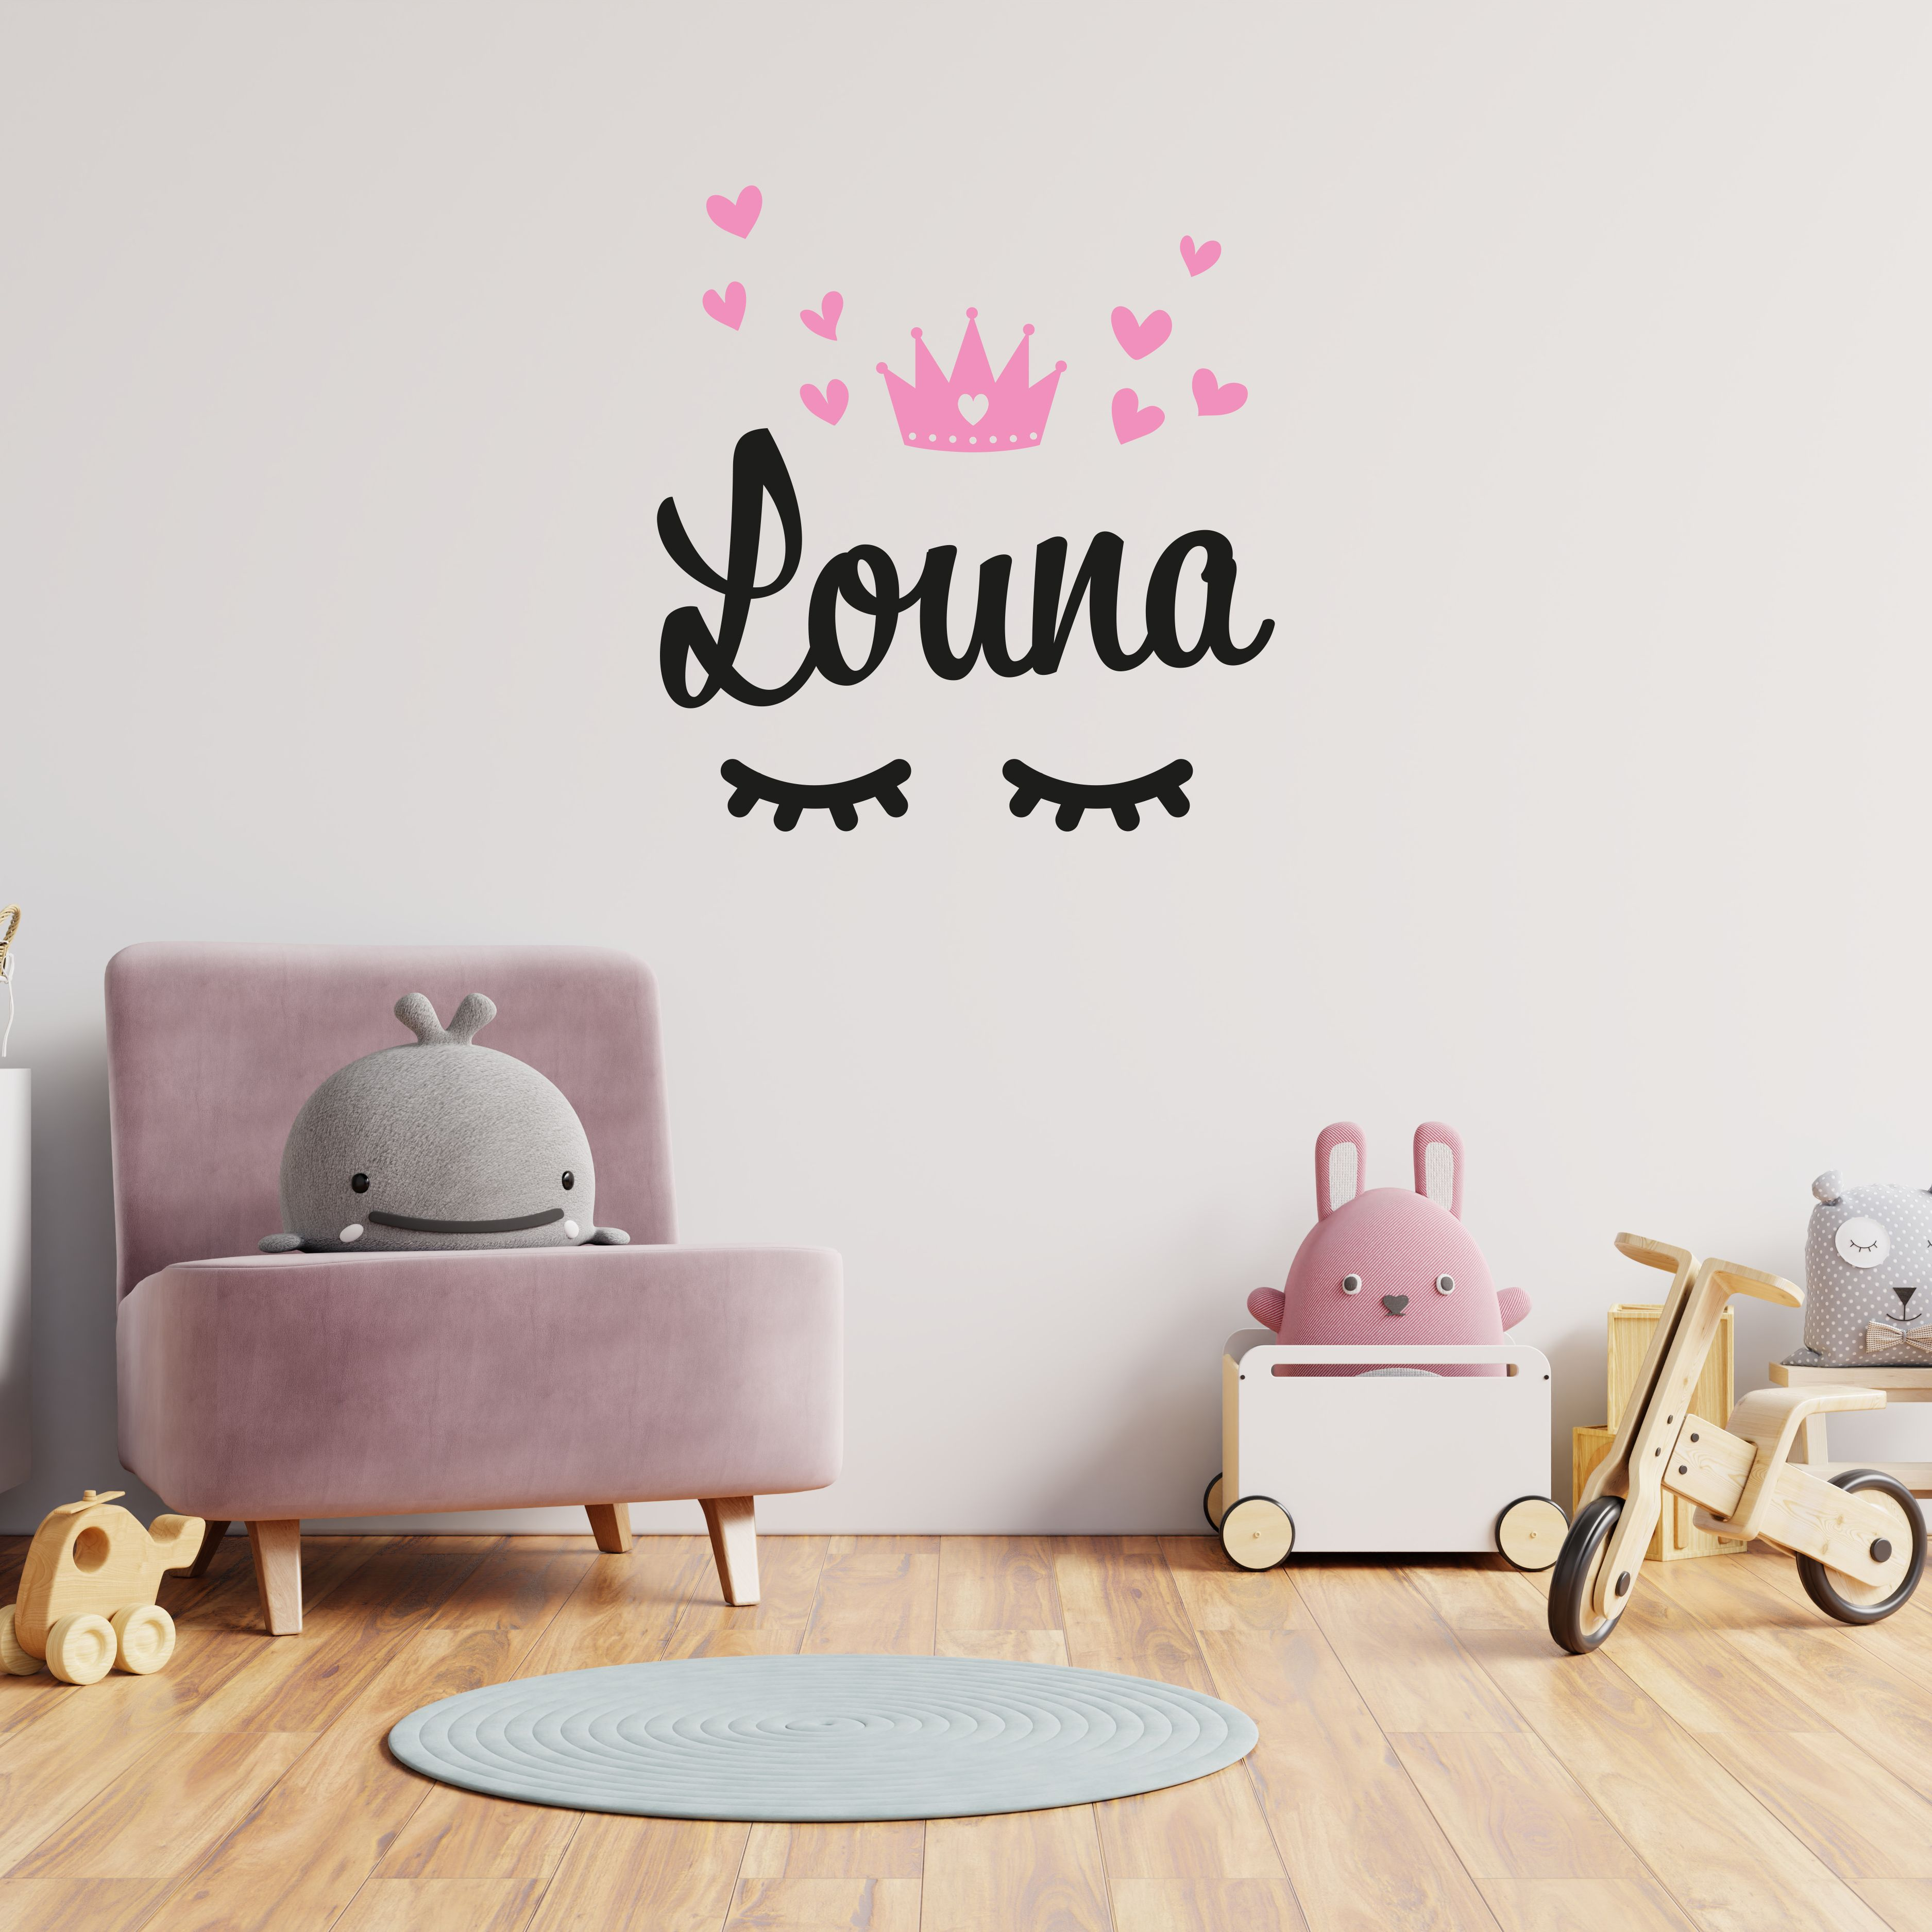 Stickers Child Room Baby Wall Custom Sticker Crown Heart First Name Kids Room Fresh Paint Custom Stickers